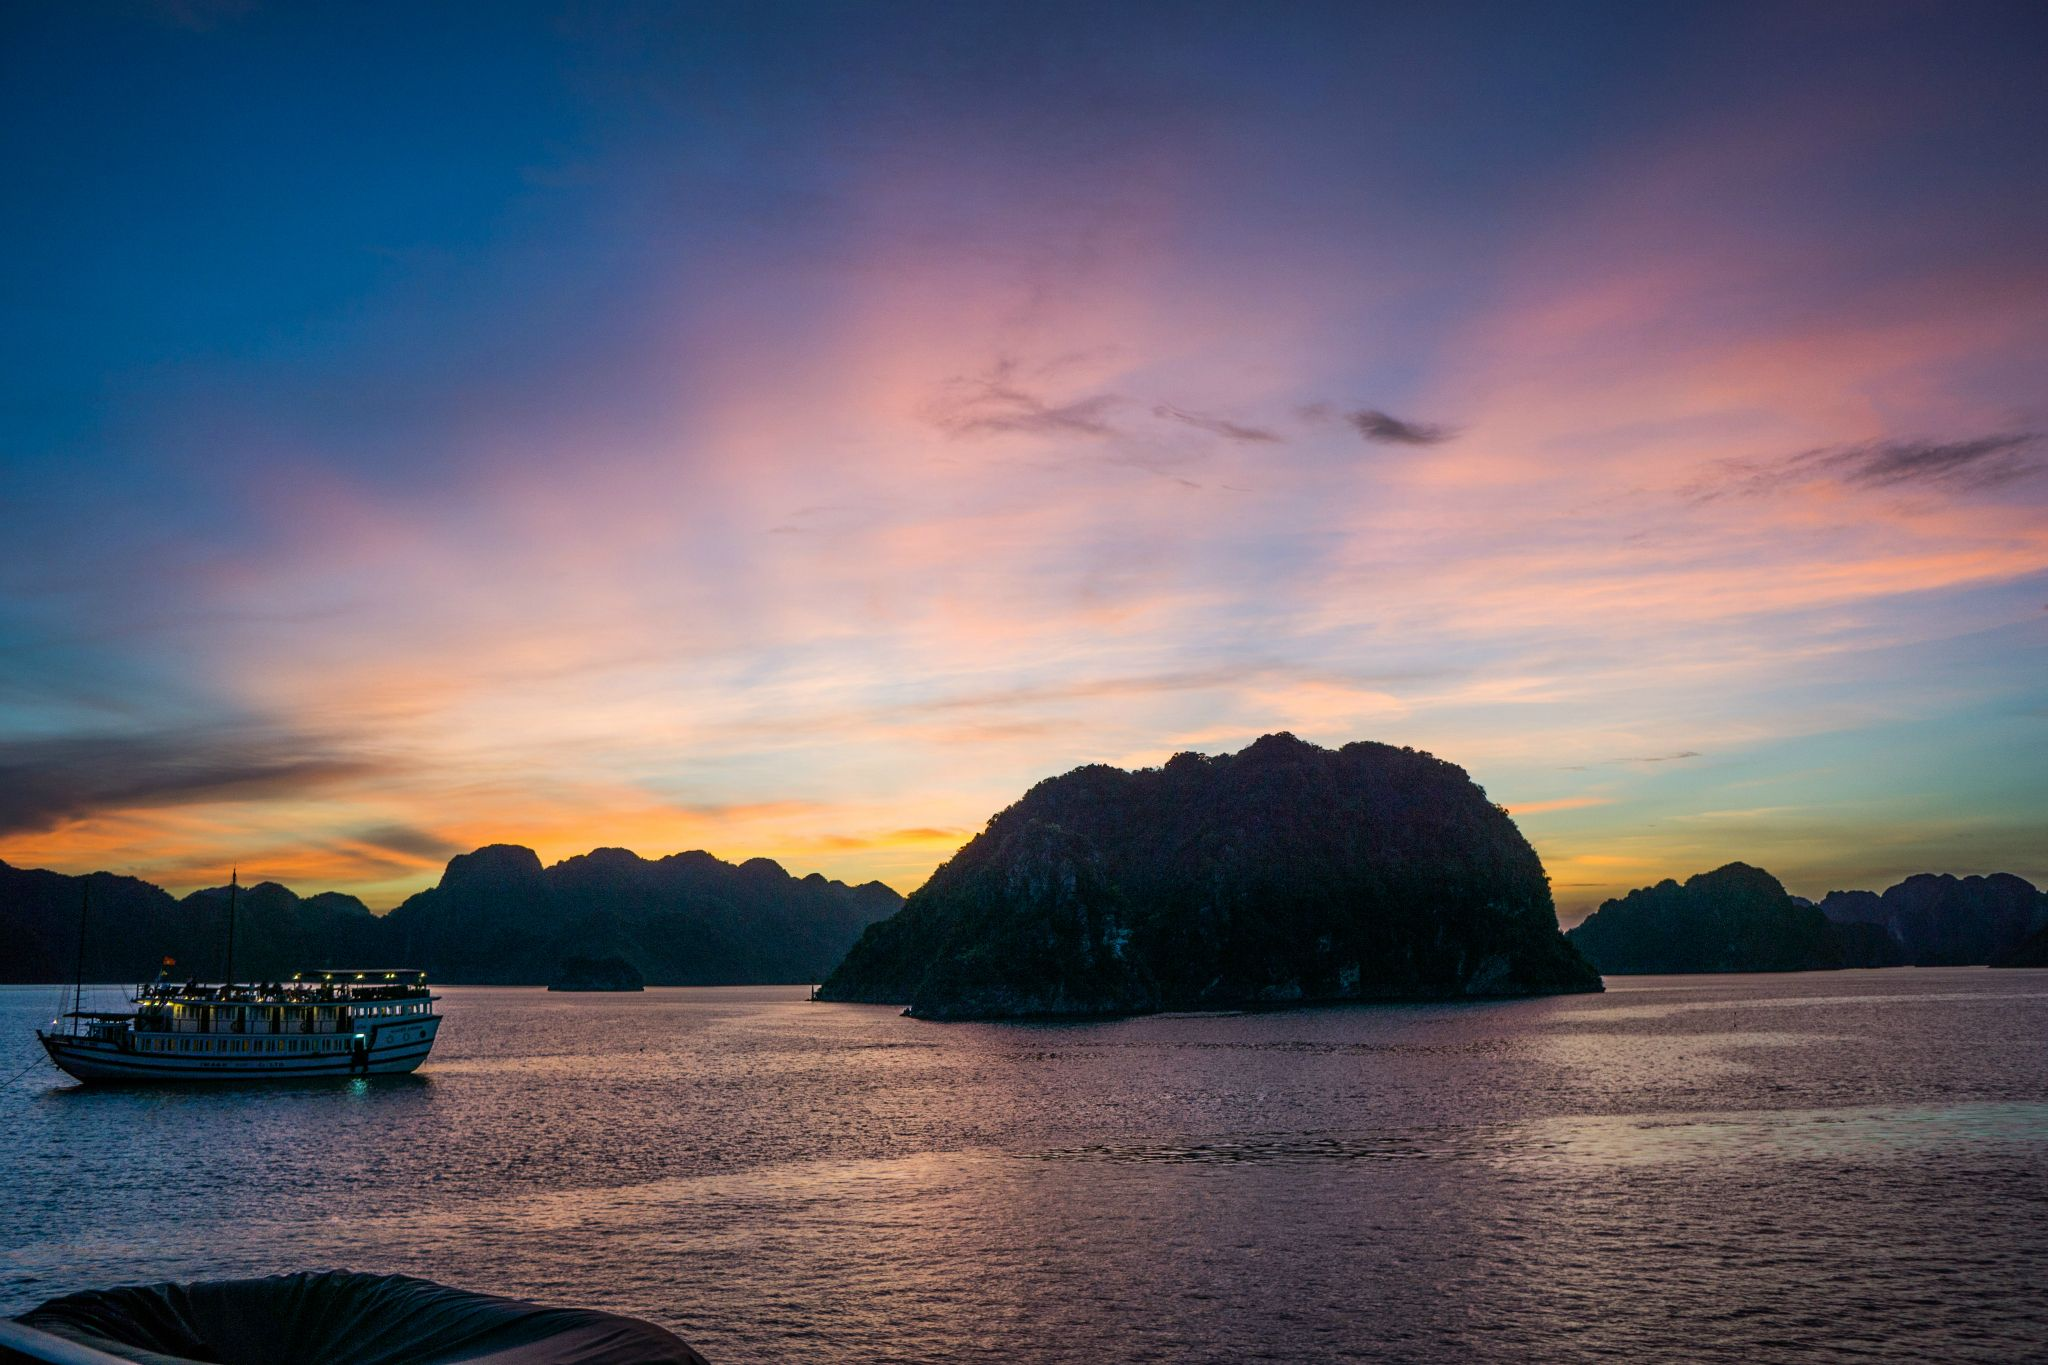 Sunset Views in Halong Bay